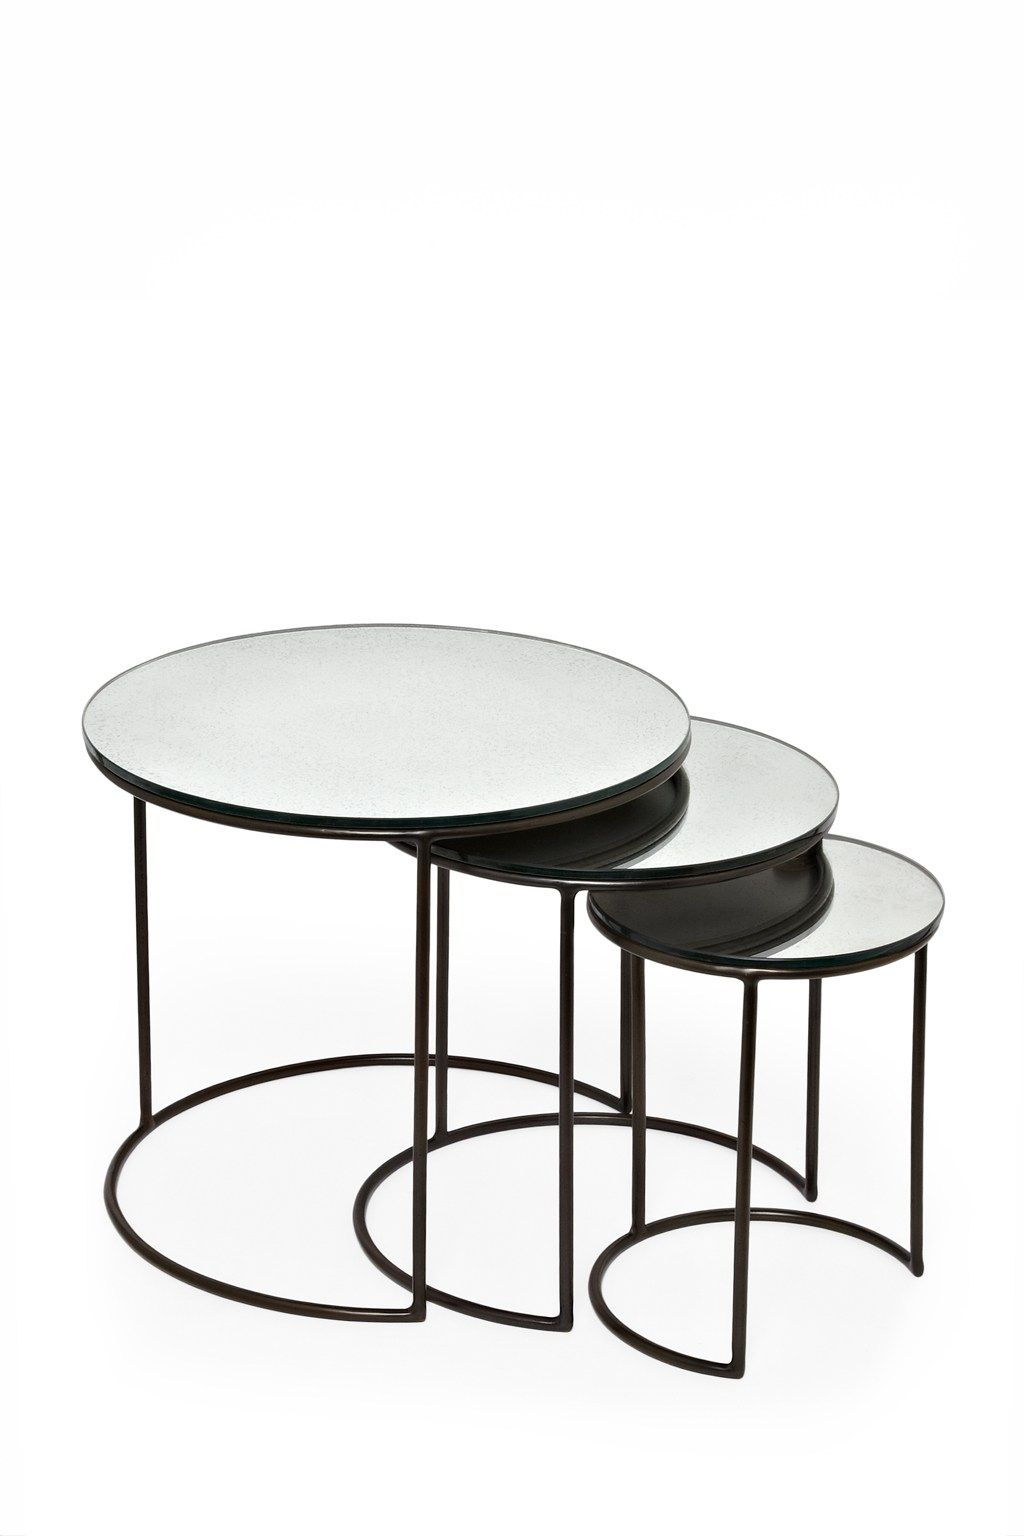 Mercurised Nest of Tables | Tables, Nest and Round table top